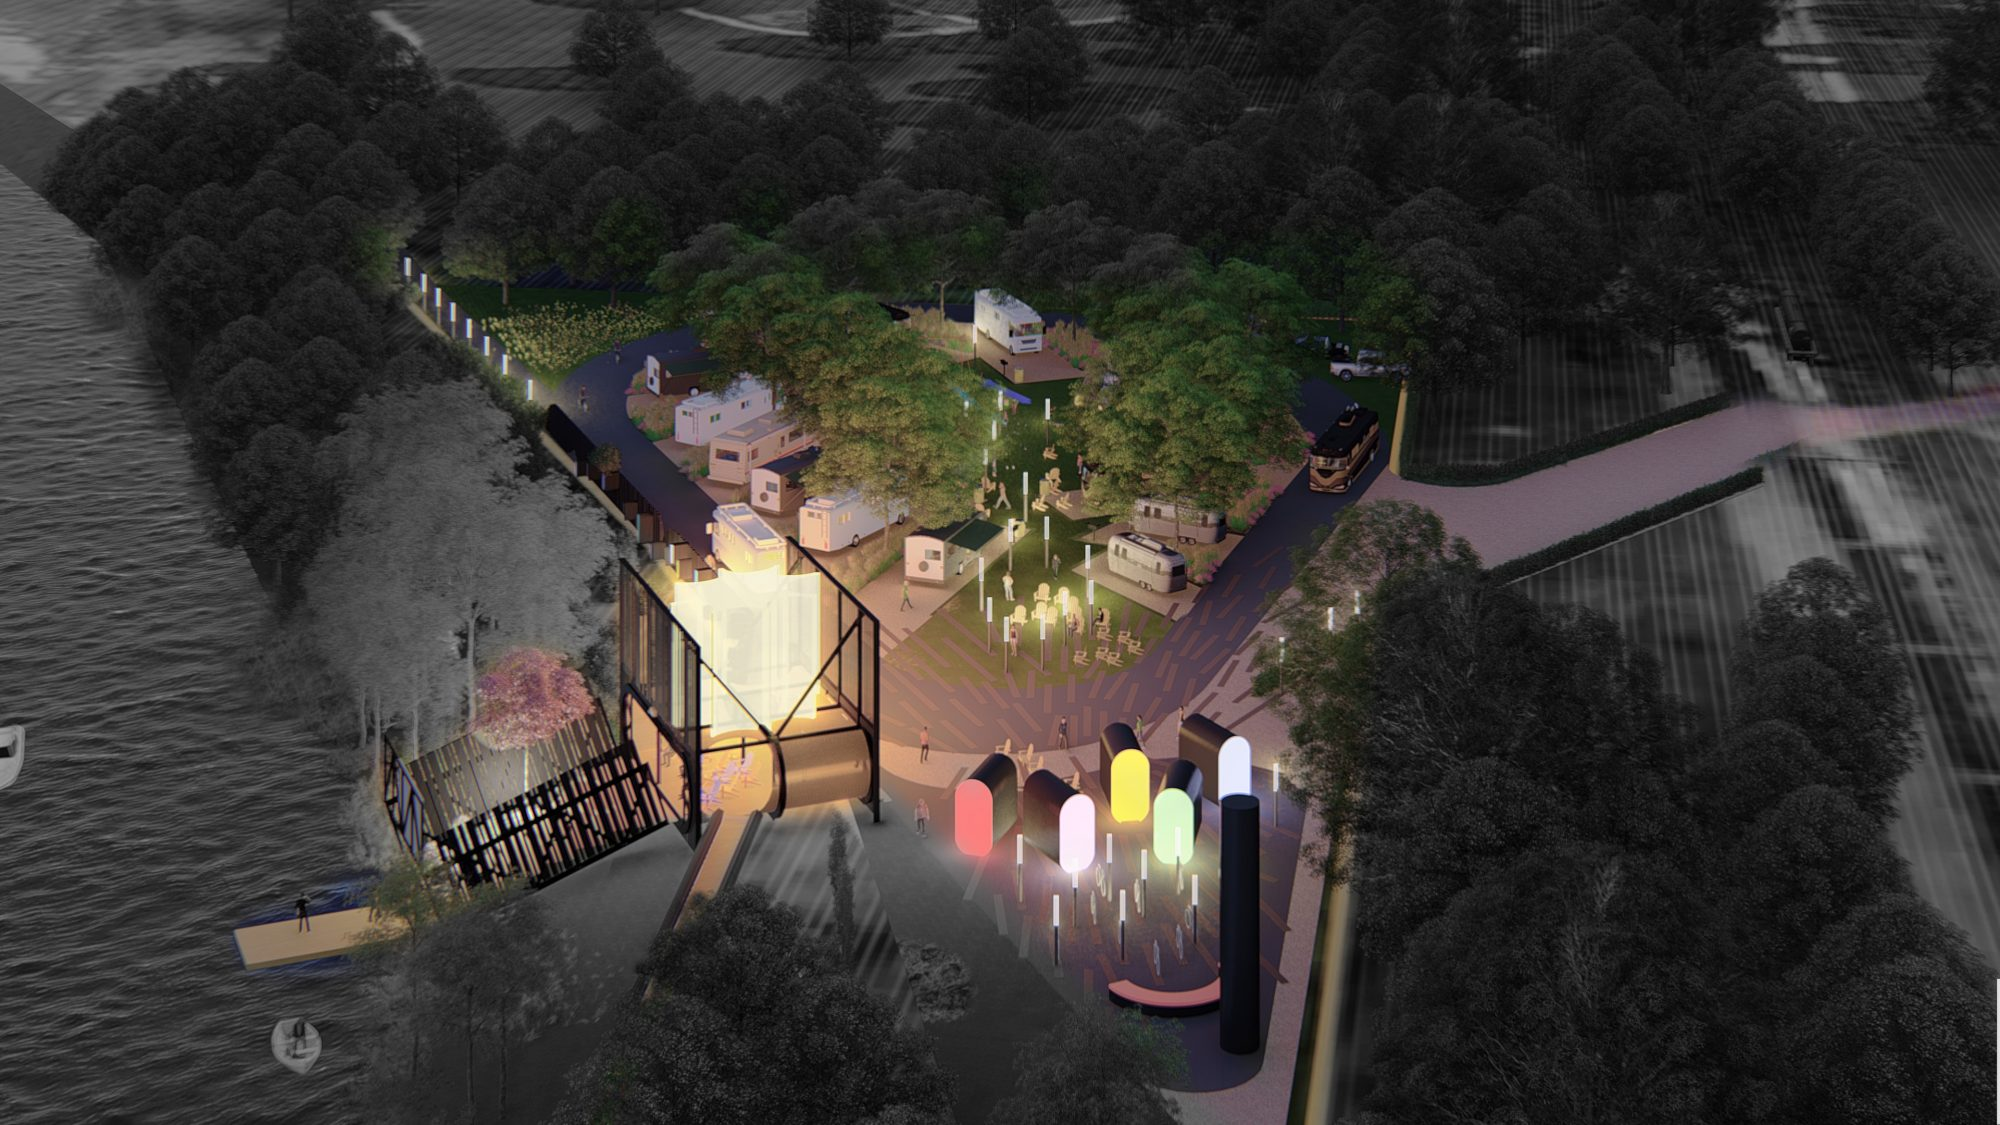 Fort Smith Waterfront RV Park